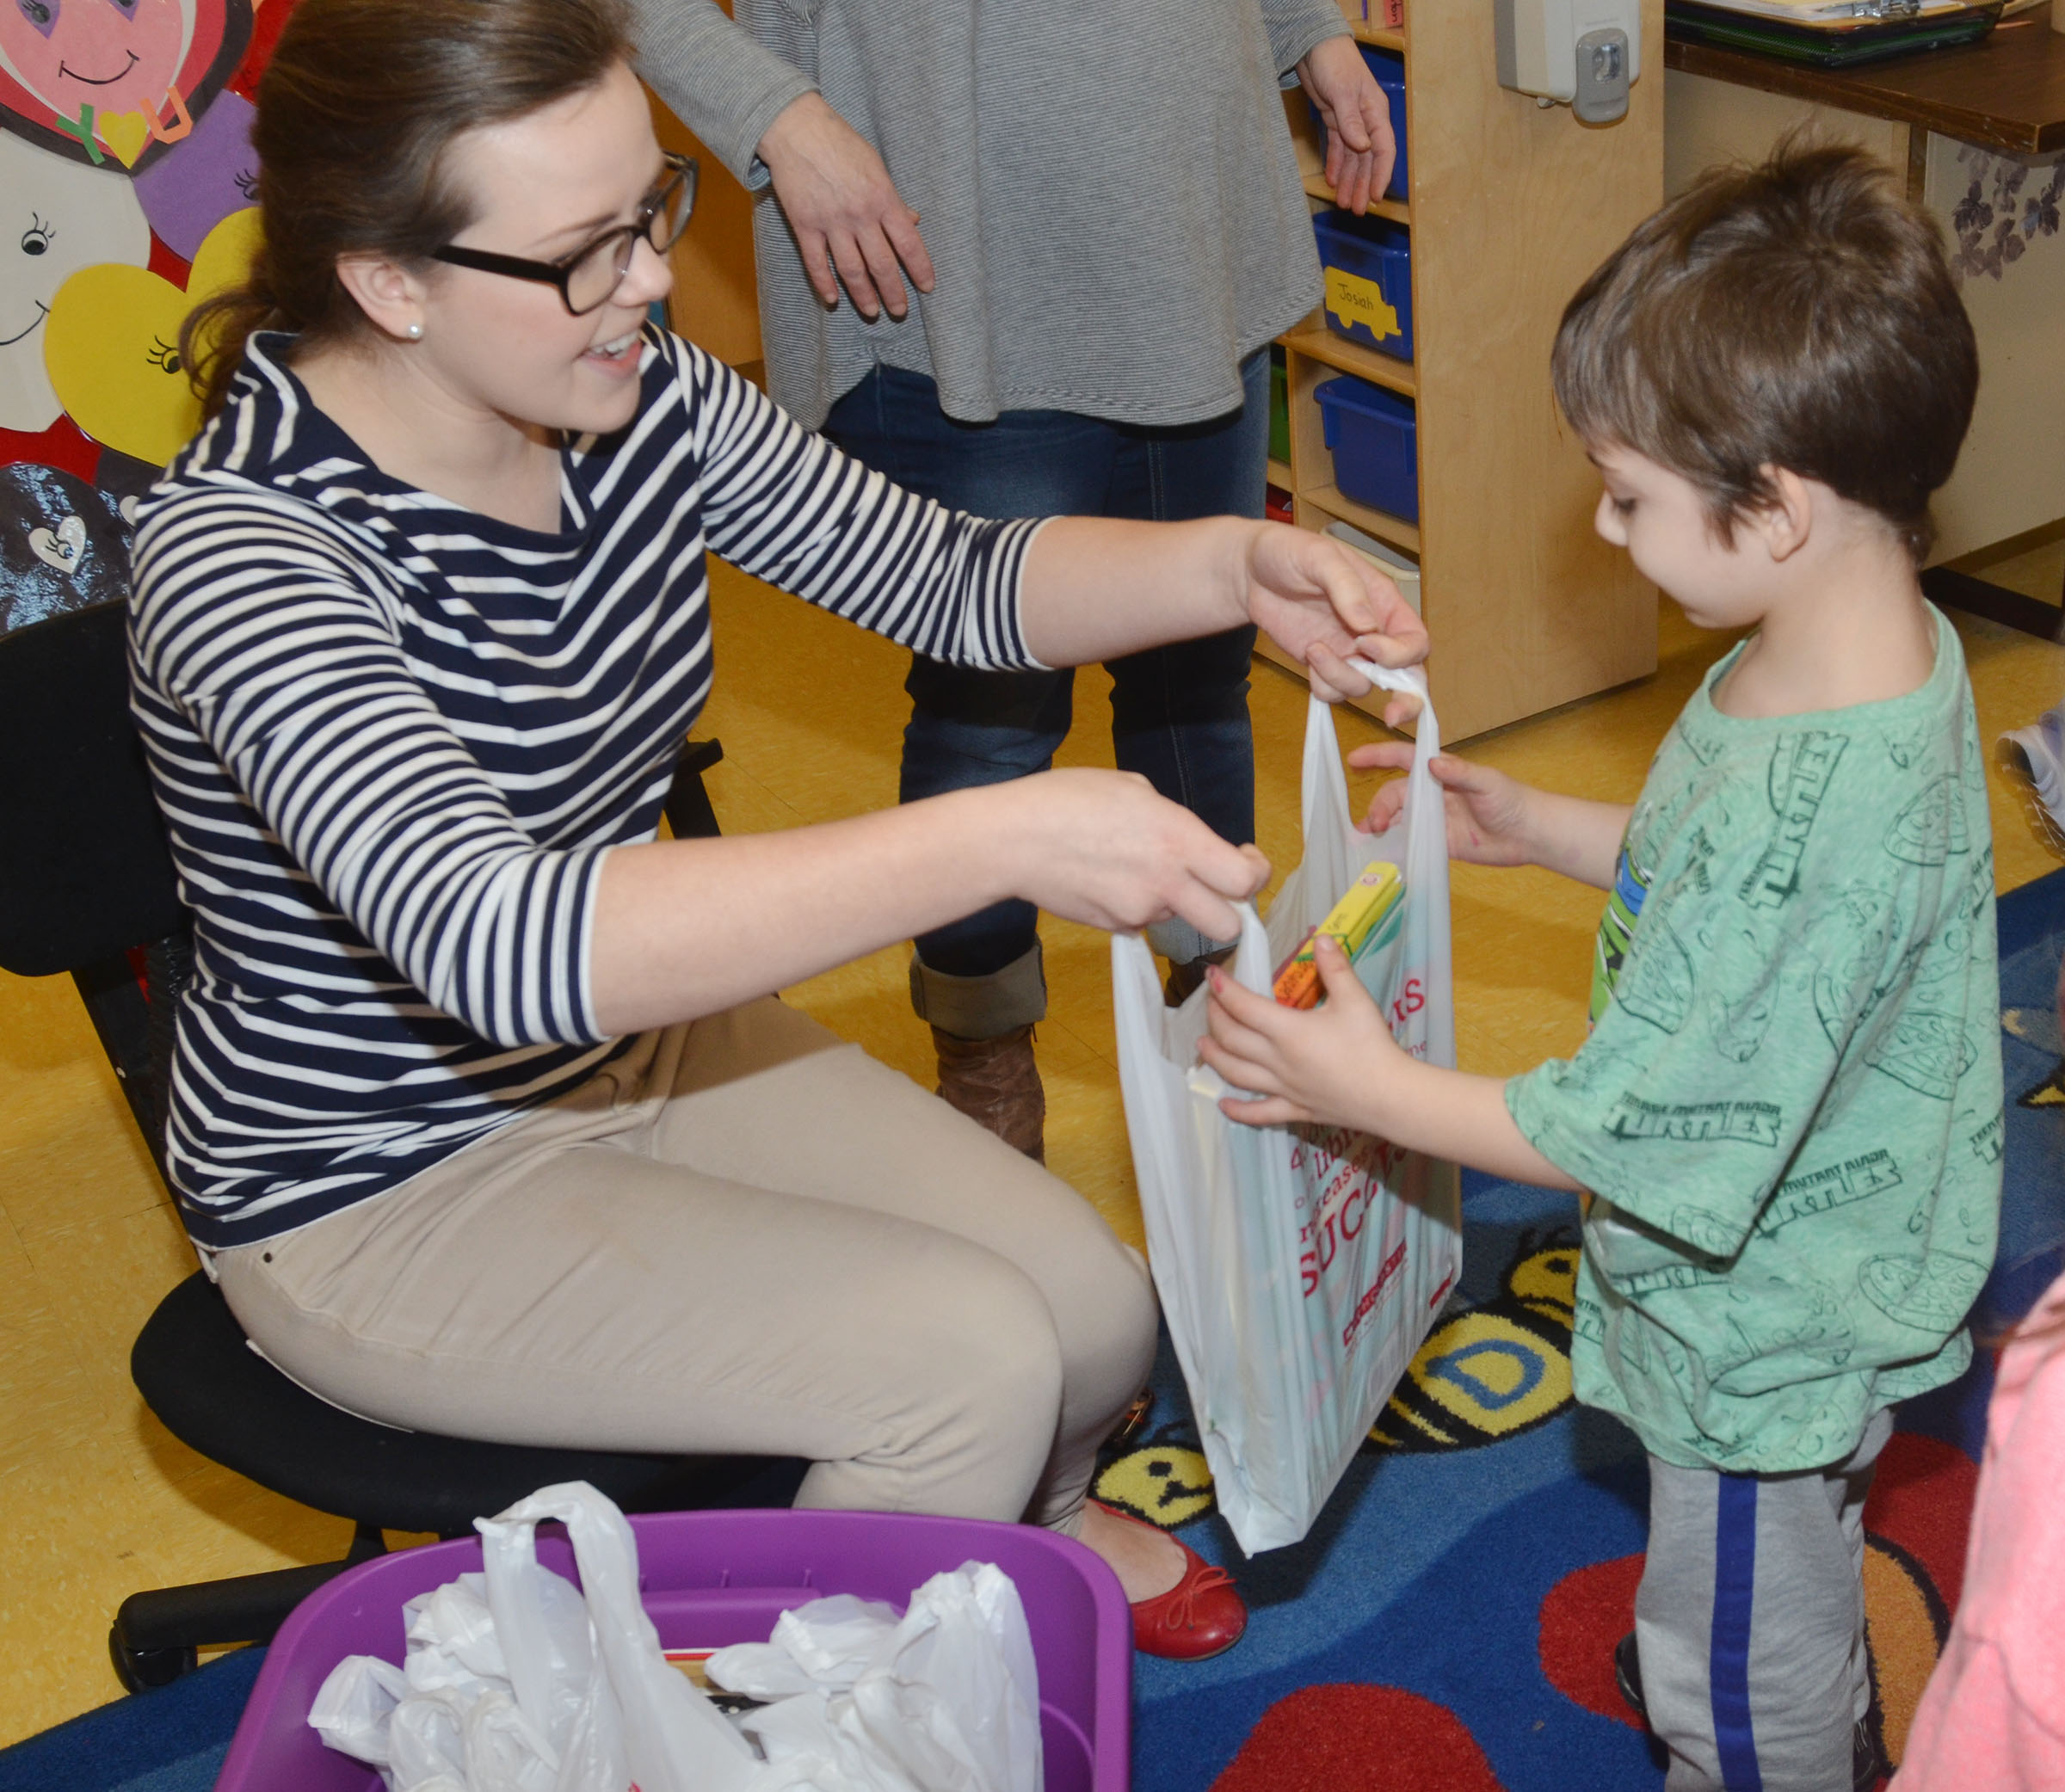 Campbellsville University education student Amanda Hamilton passes out books to CES preschool student Josiah Dean.